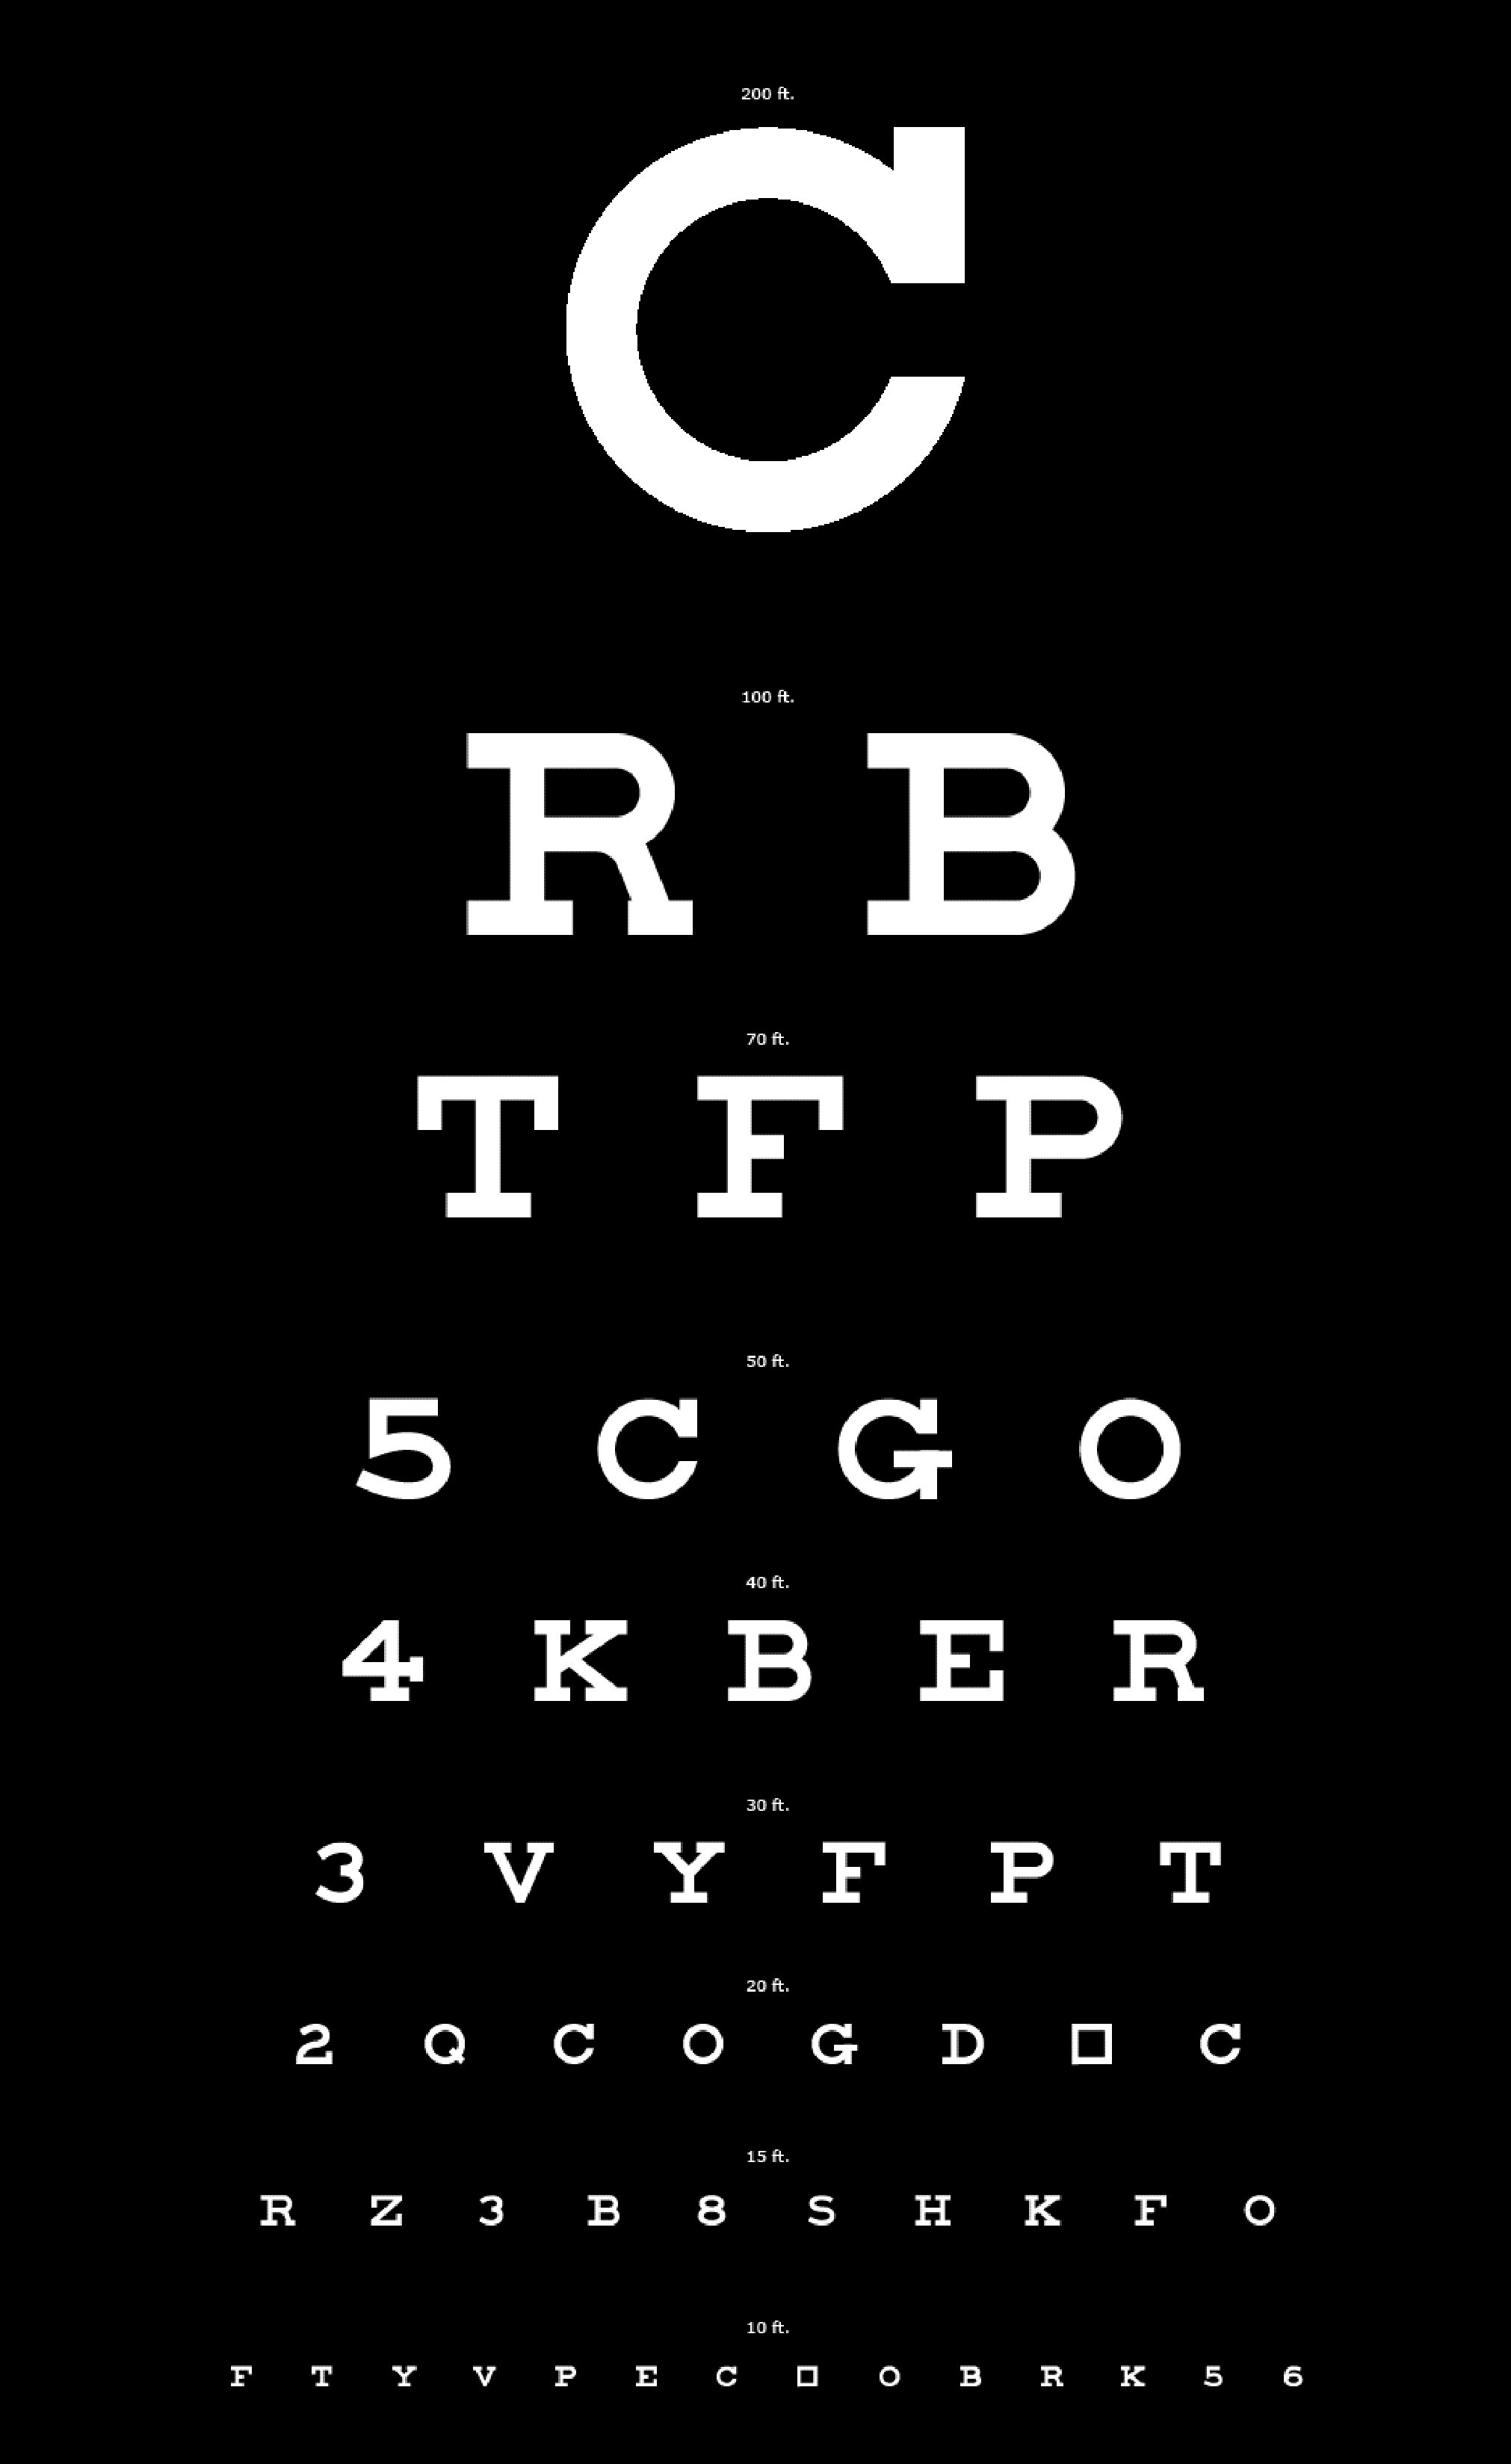 866d603560f EYECHARTS TO TEST AND IMPROVE CLOSE AND DISTANT EYESIGHT